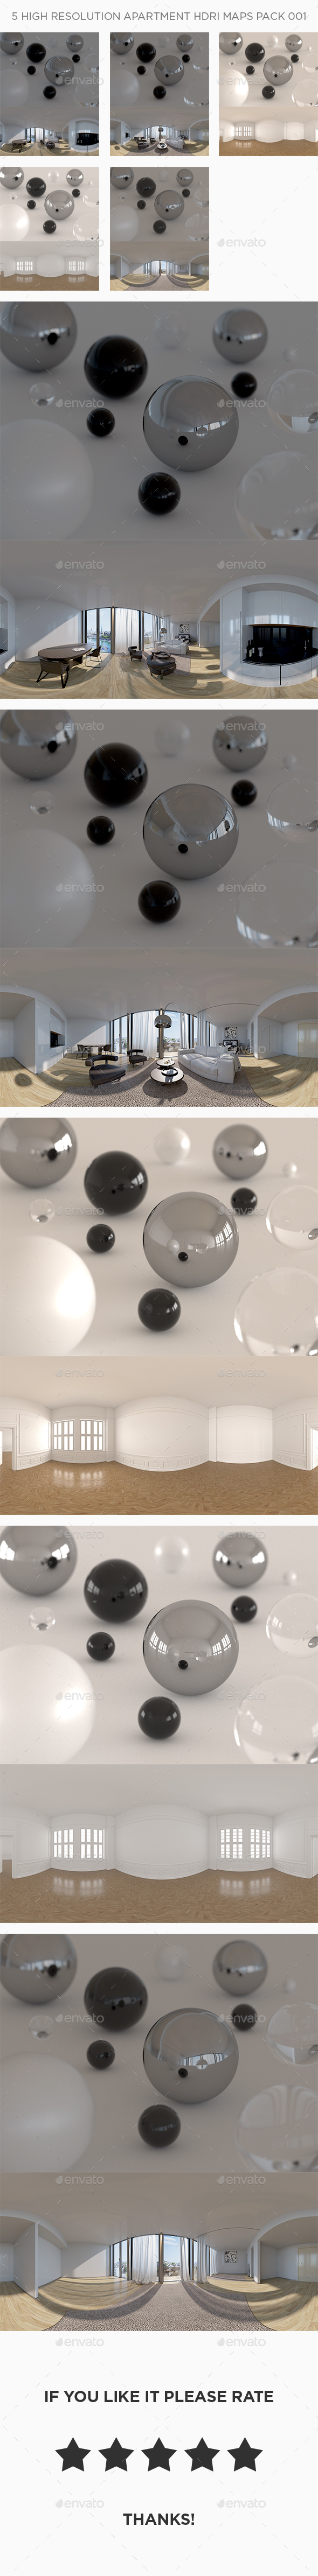 5 High Resolution Apartment HDRi Maps Pack 001 - 3DOcean Item for Sale